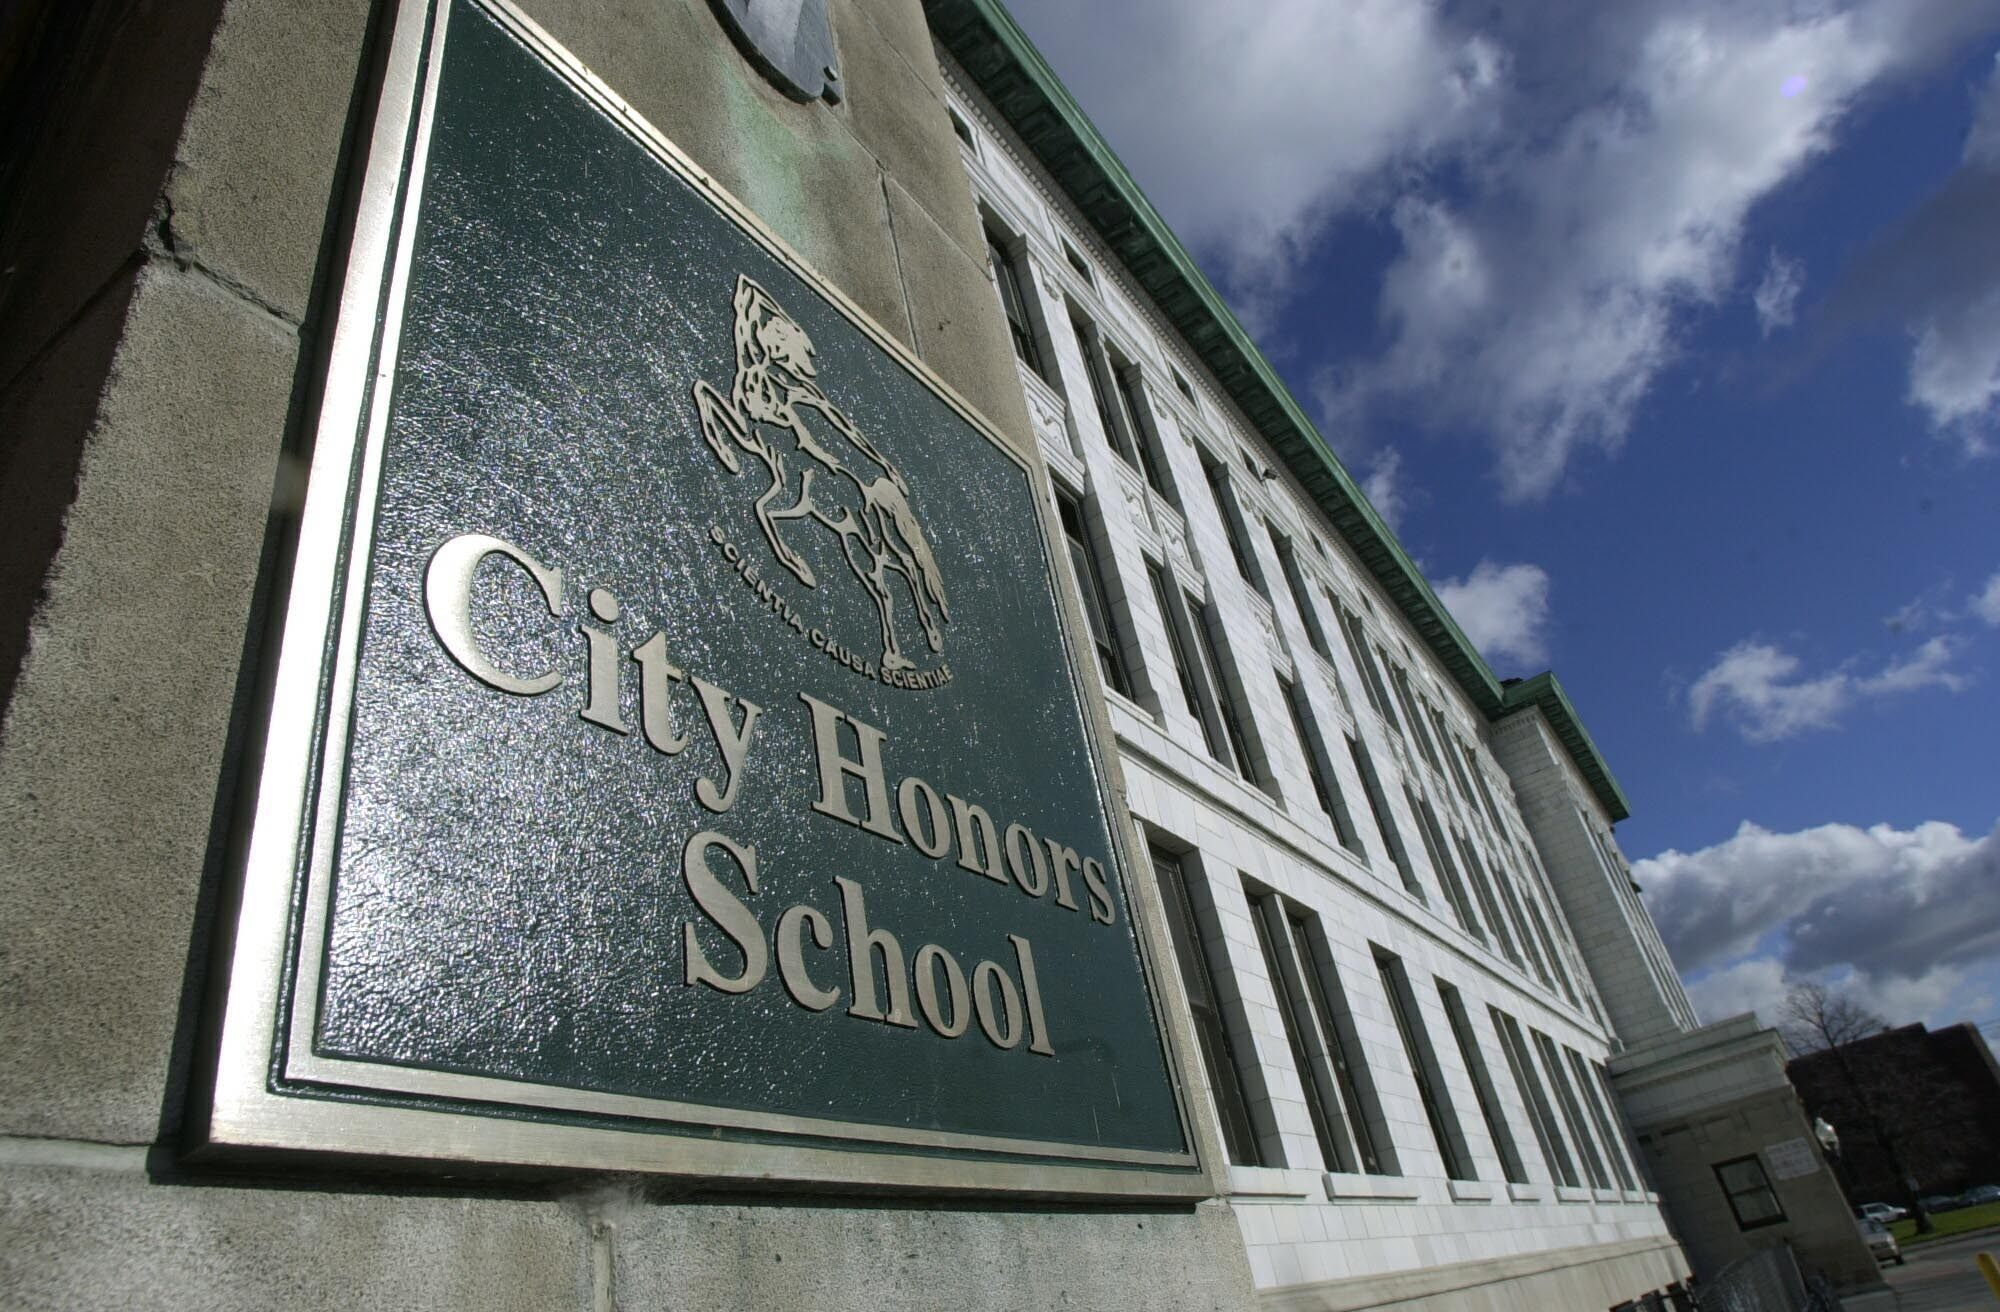 Competition for seats grows as district seeks diversity at City Honors, one of the nation's top schools. (News file photo)